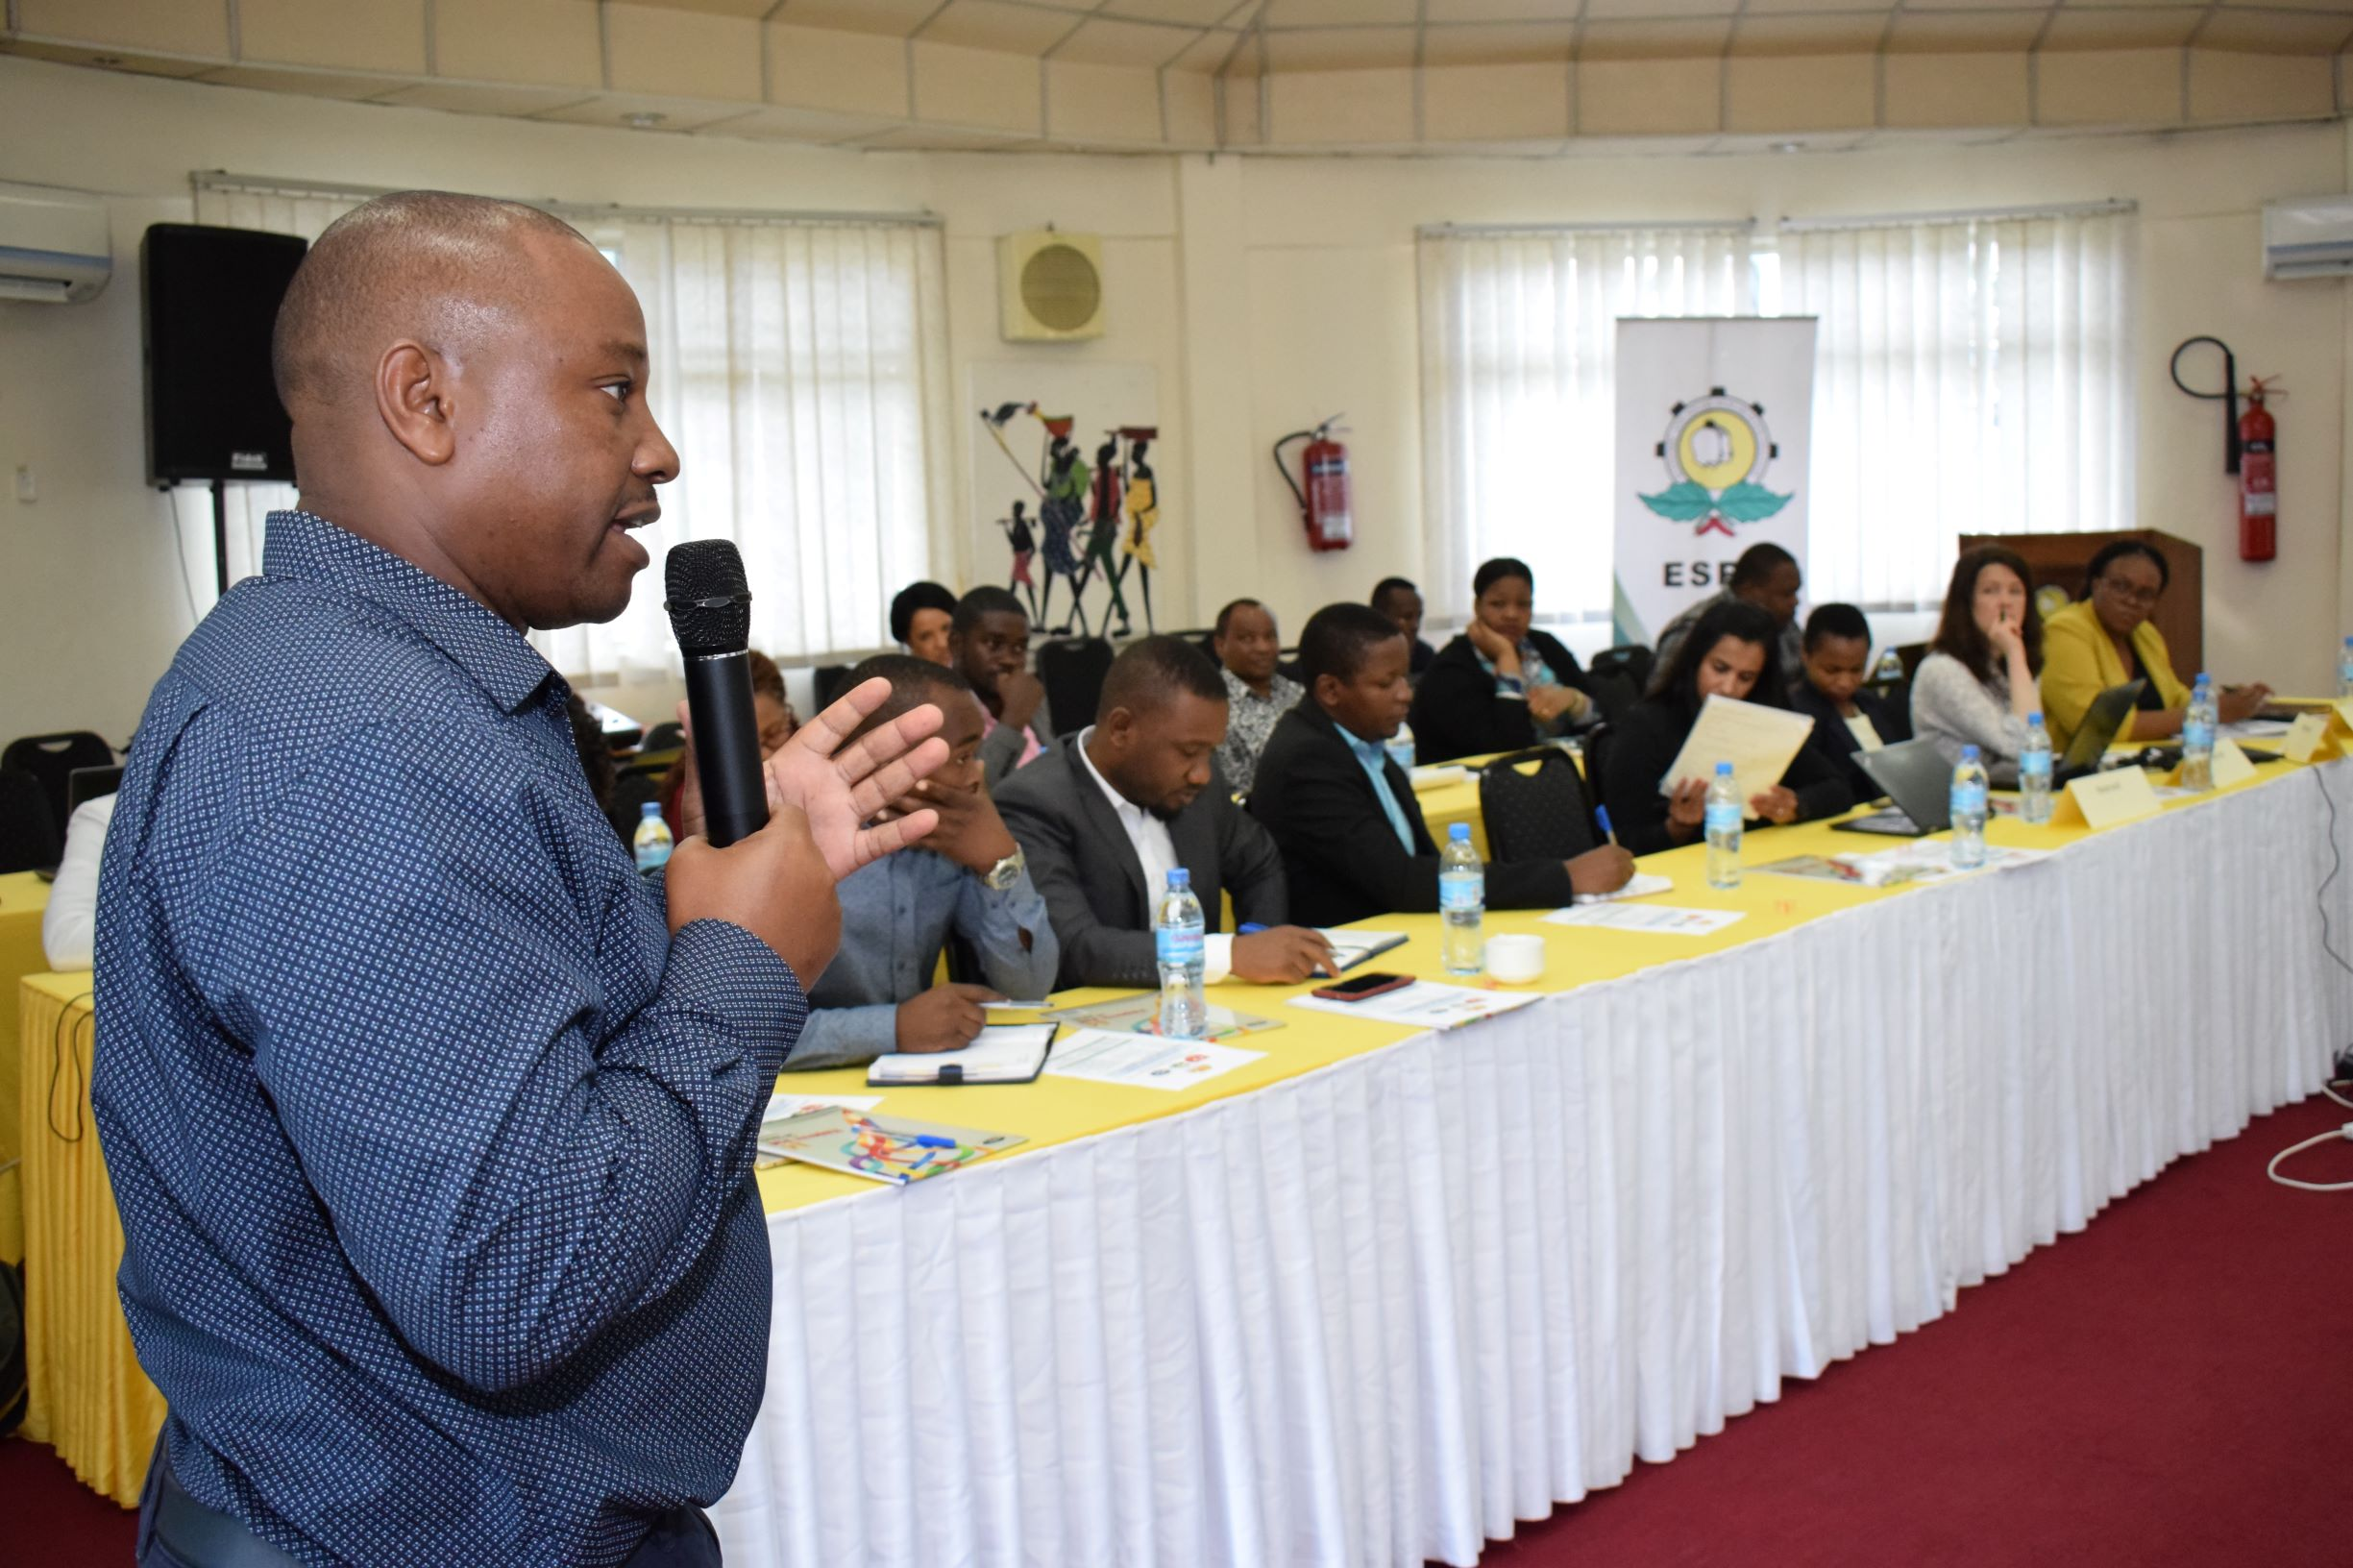 Team member Patrick Kihenzile speaks during the Maize value chain workshop on the 19th June.